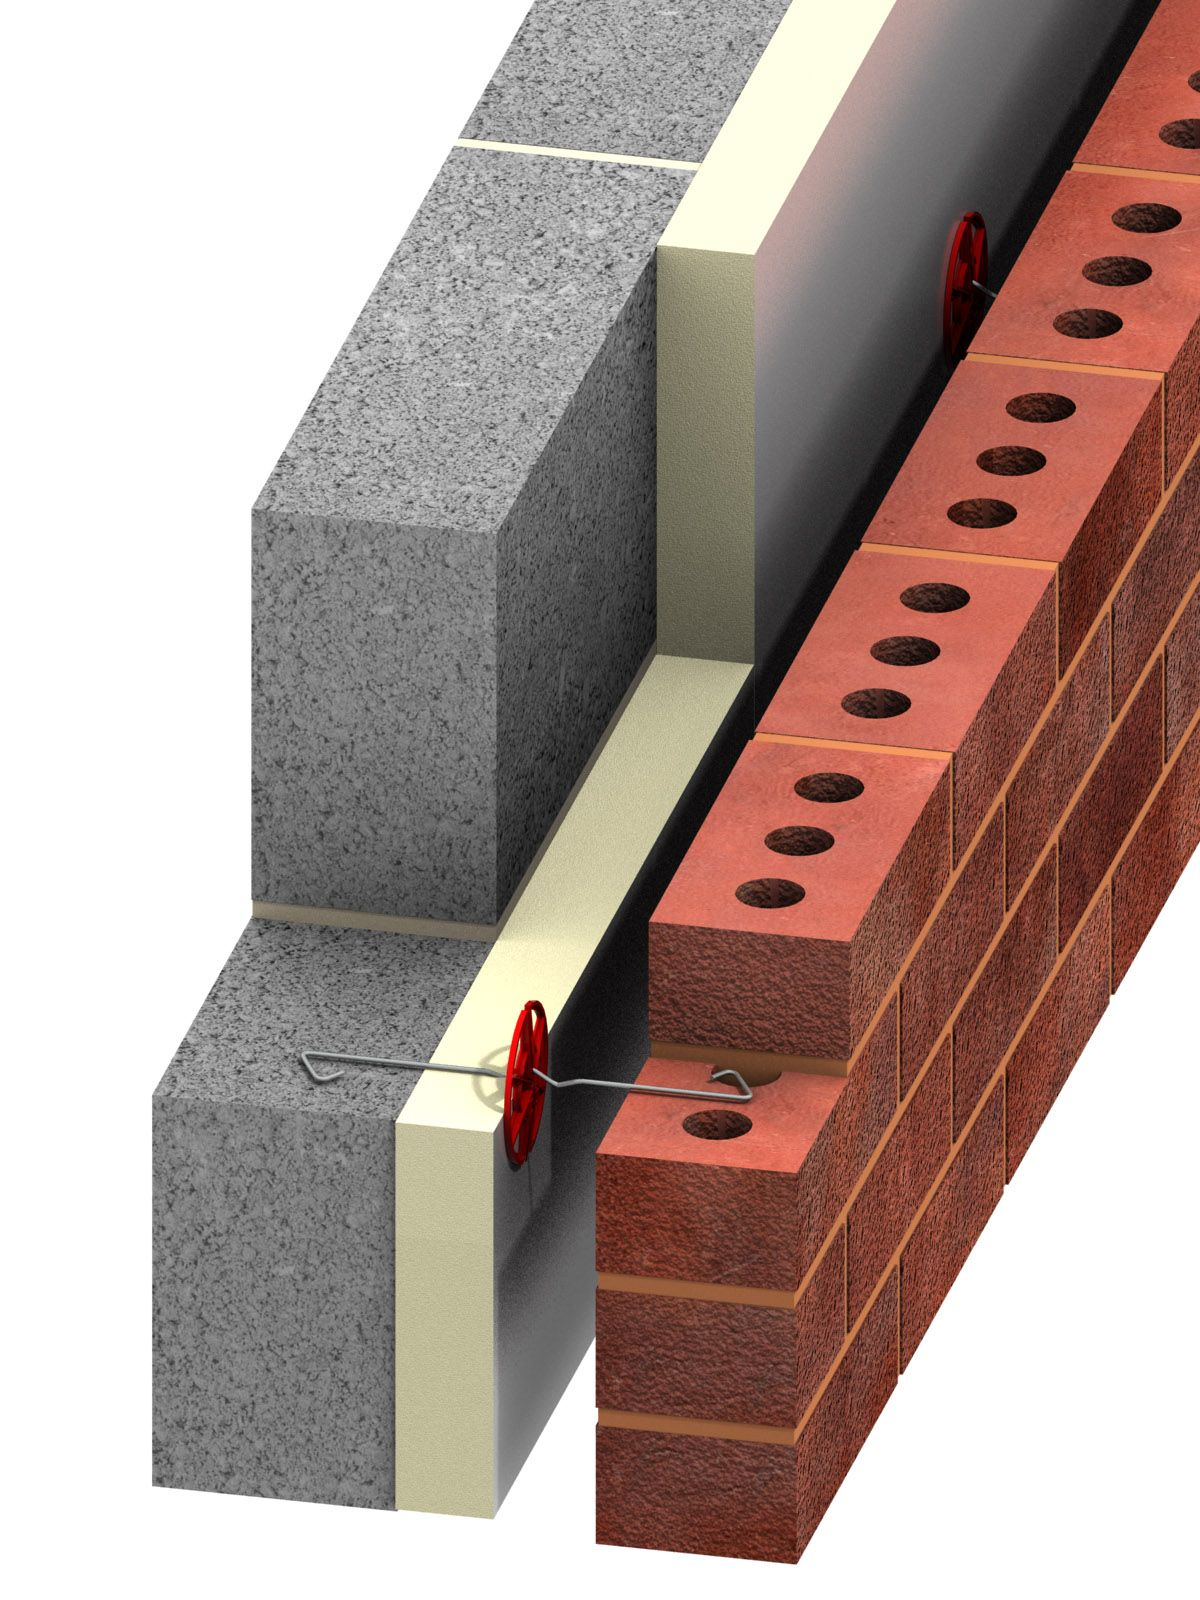 Isoboard Can Be Used Throughout The Entire Building Envelope Including Cavity Walls Typical Uses Cavity Wall Cavity Wall Insulation Thermal Insulation Wall